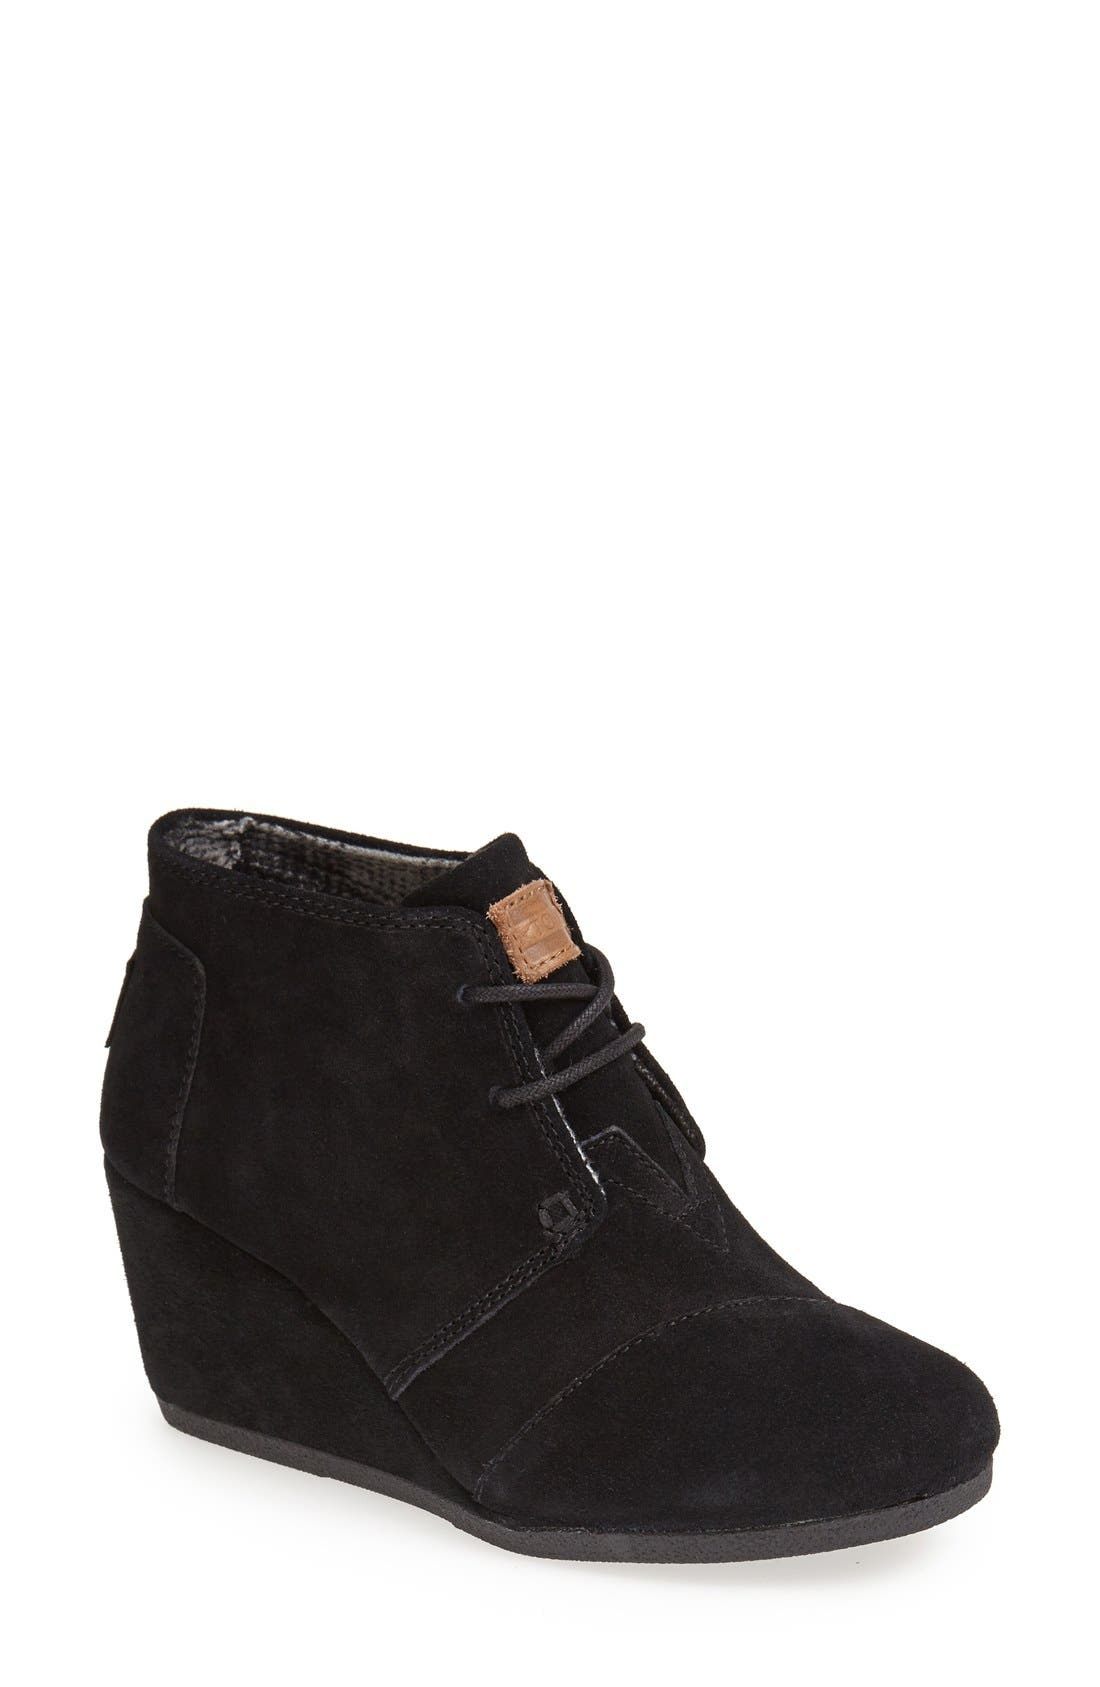 TOMS, 'Desert' Wedge Bootie, Main thumbnail 1, color, 001